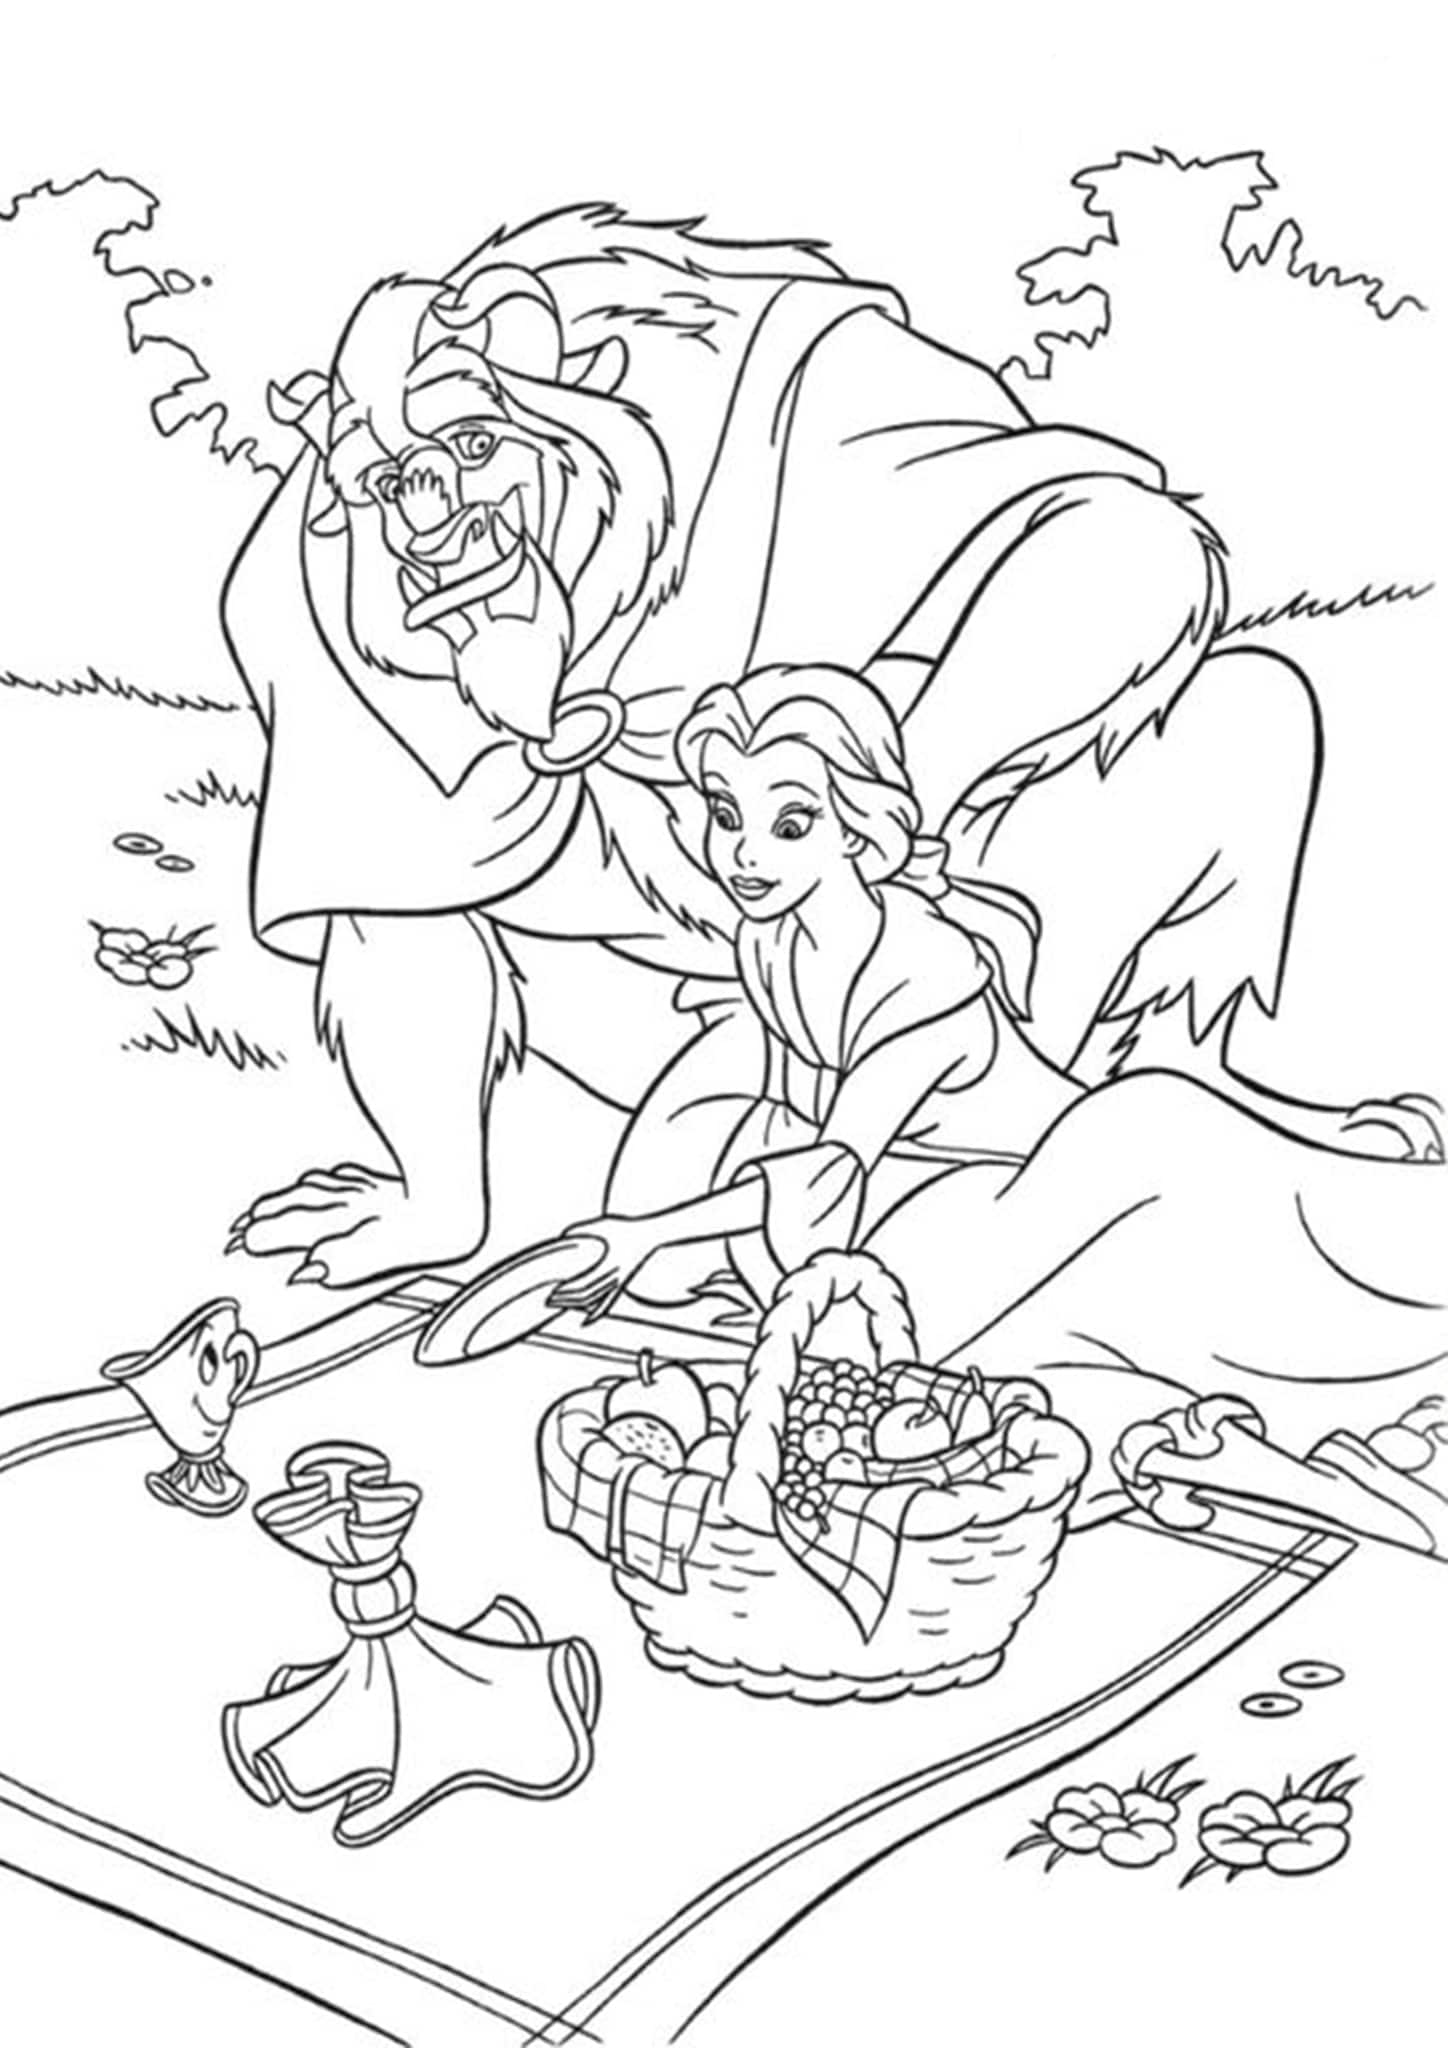 beauty and the beast colouring pages beauty and the beast coloring pages 2 disneyclipscom the colouring pages beauty beast and